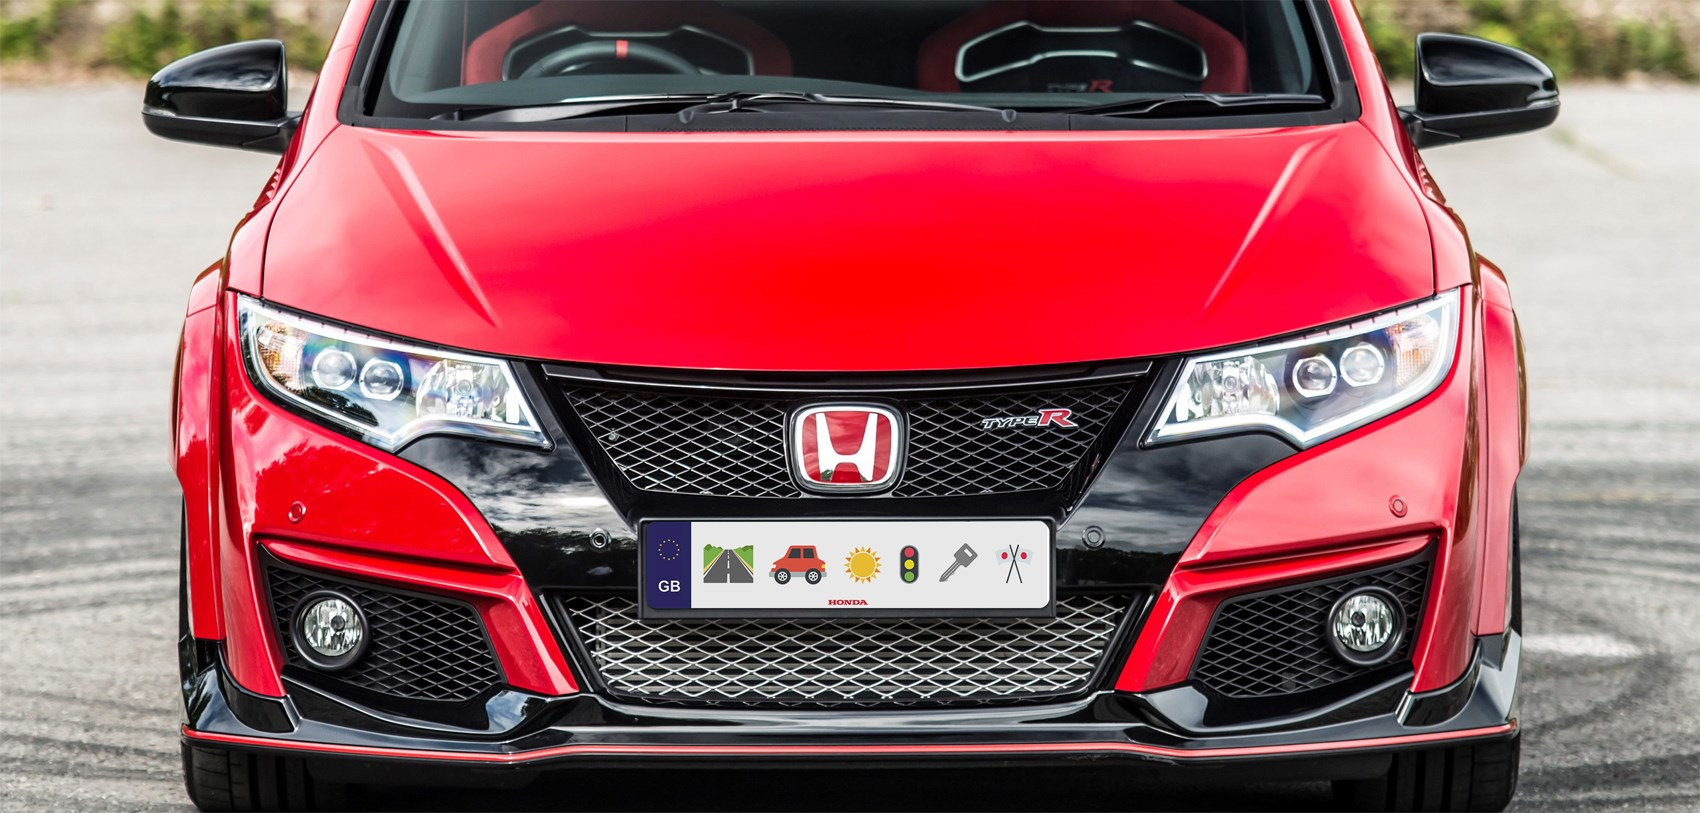 Hondas Emoji Licence Plate MGs Invisible Concept Car